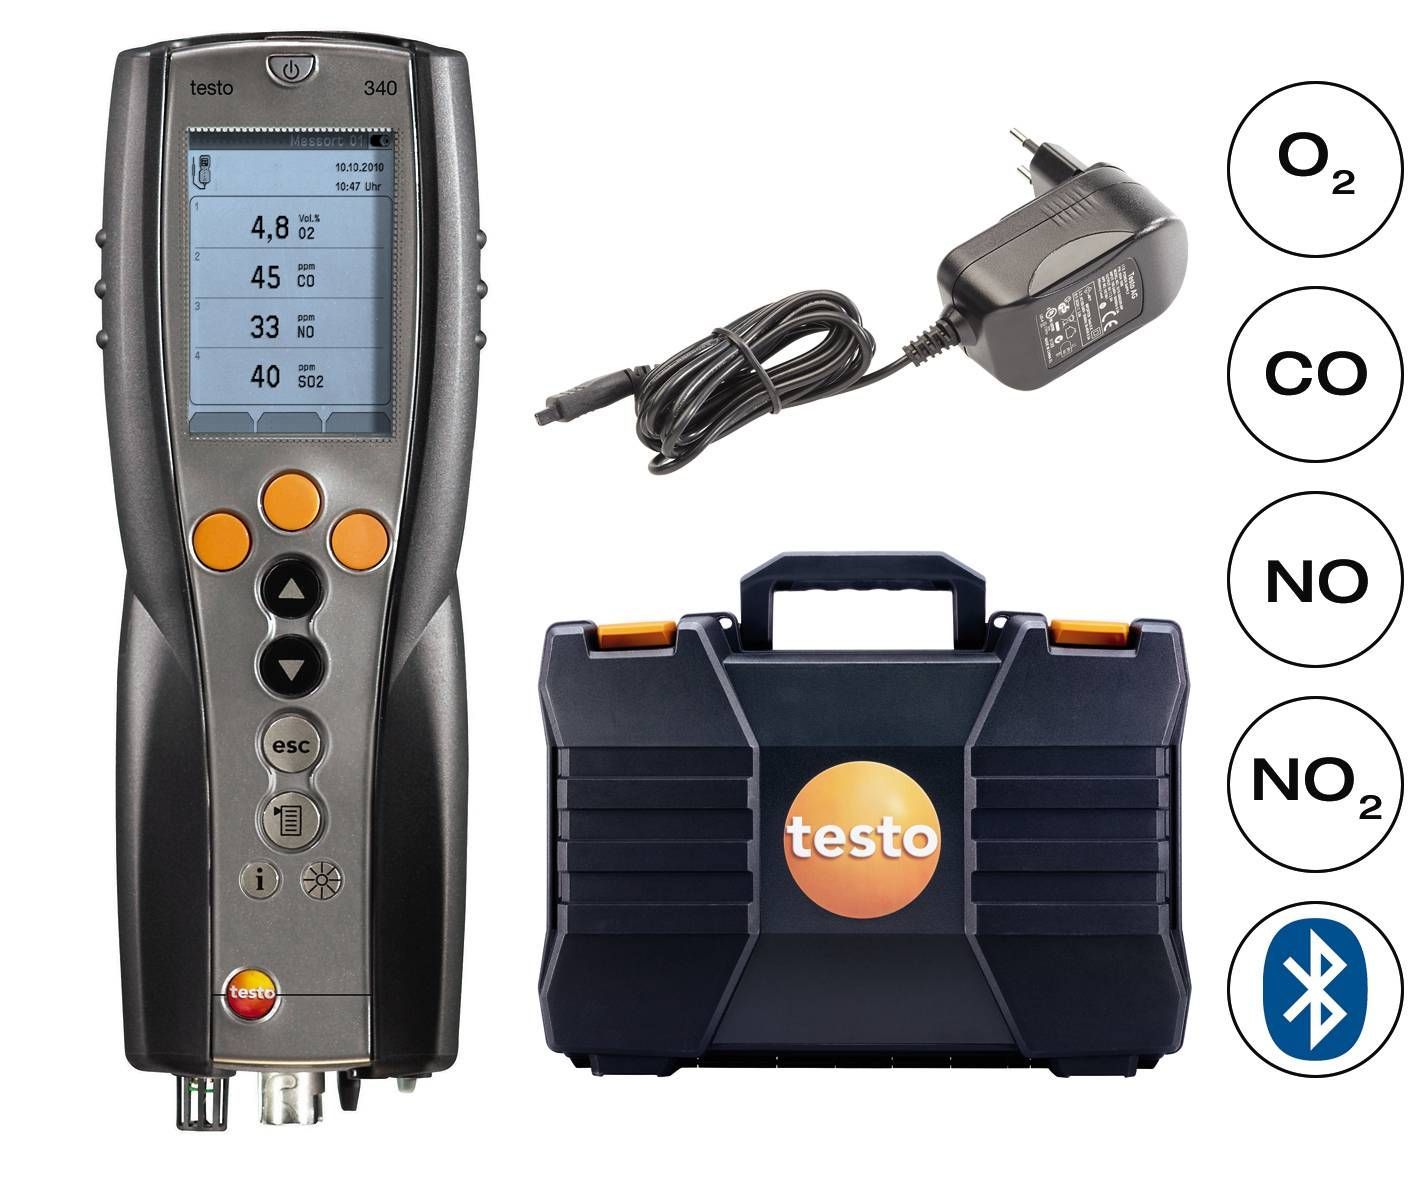 Testo 340 NO2 NOx Kit Image.jpg